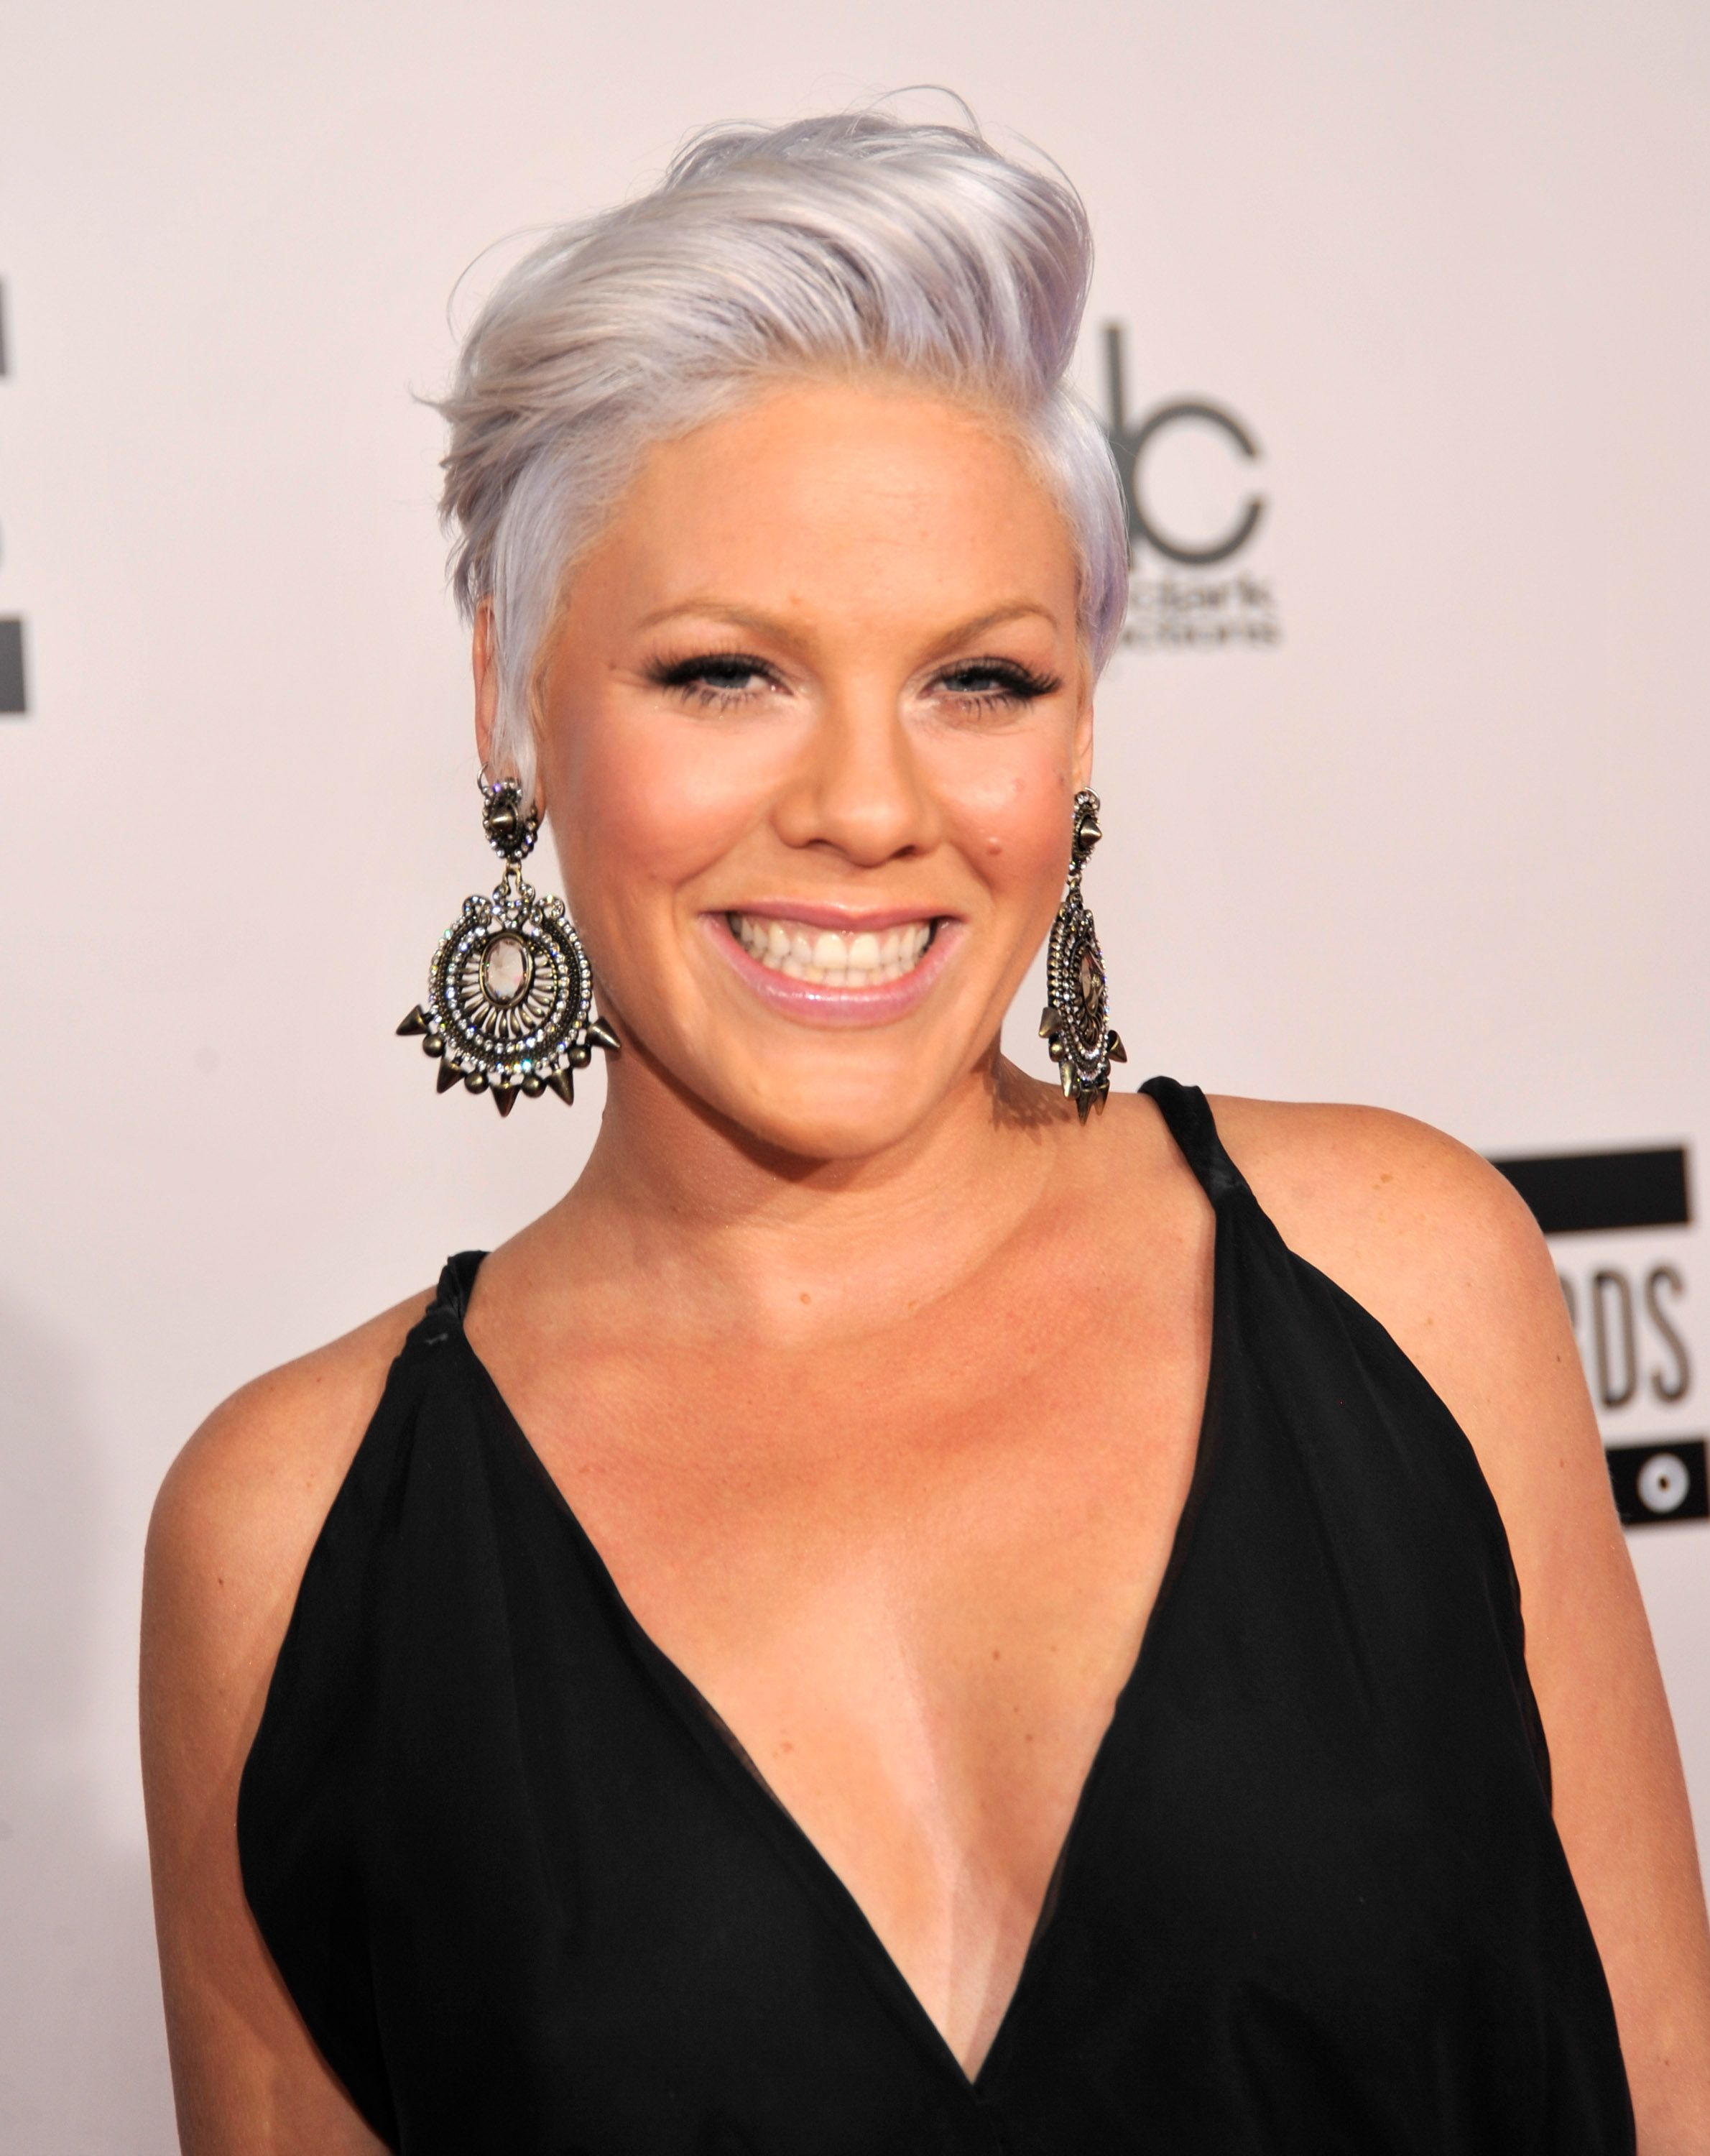 13 Silver Looks That Prove Gray Hair Is Glamorous   Pixies, Short ...